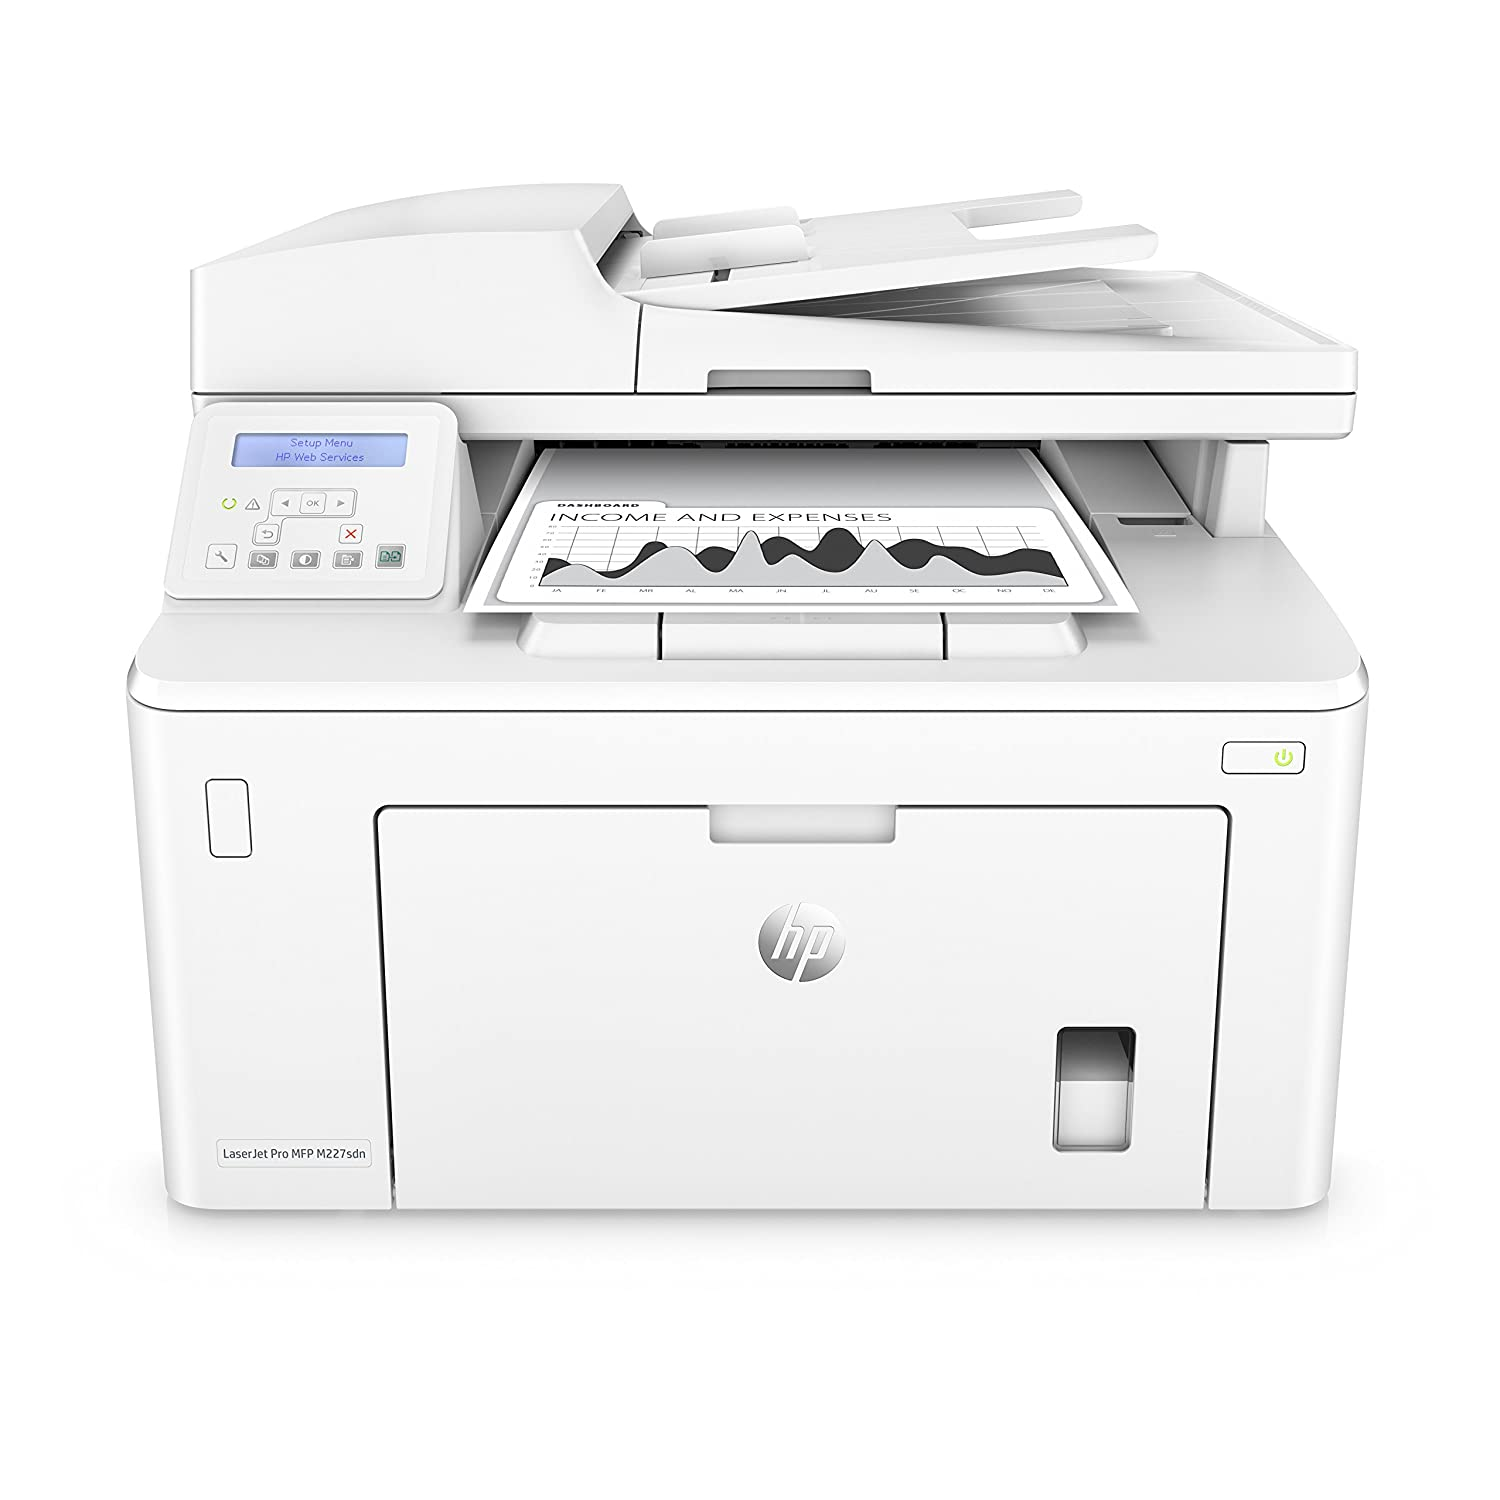 Amazon.com: Multifunction Printer Hewlett Packard M227SDN 28 ...